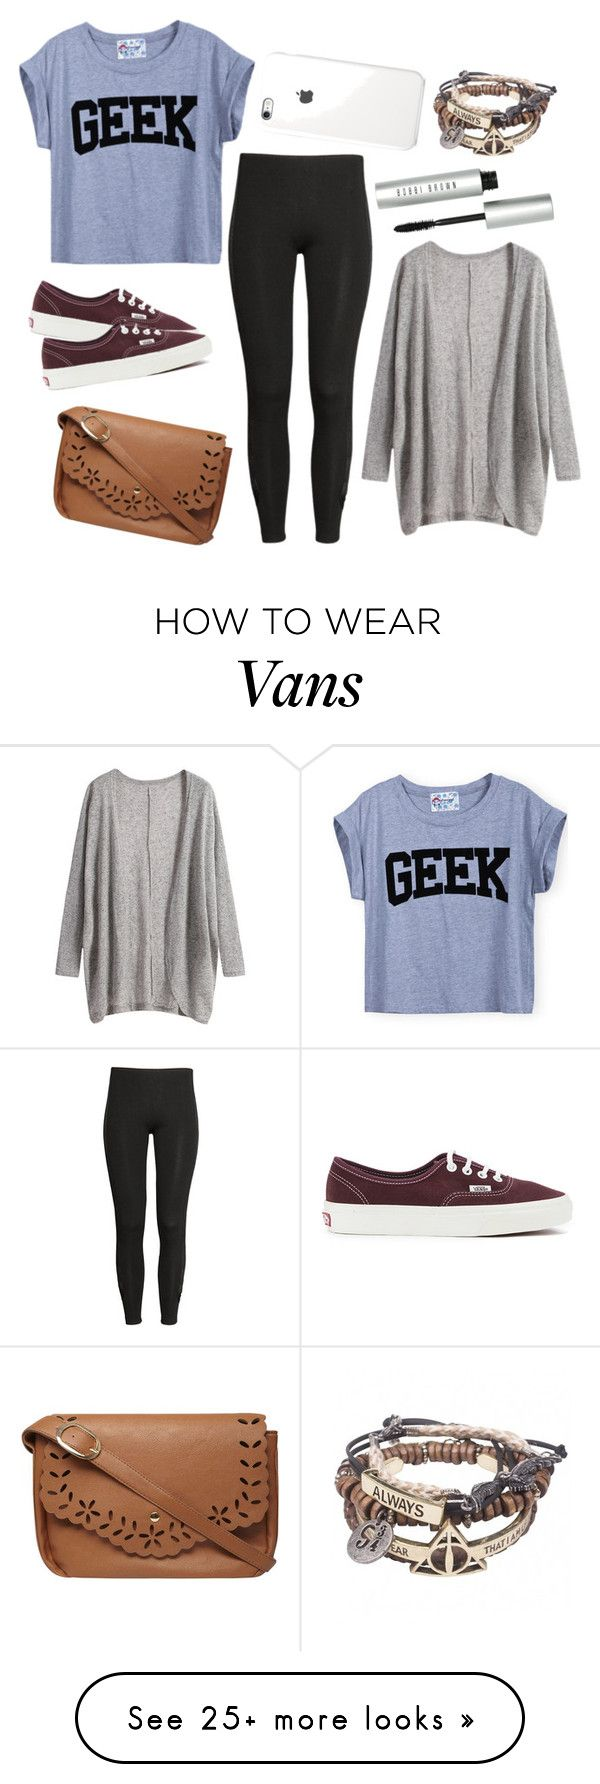 """Daughter Of Athena"" by cfull on Polyvore featuring H&M, Bobbi Brown Cosmetics, Vans and Dorothy Perkins"